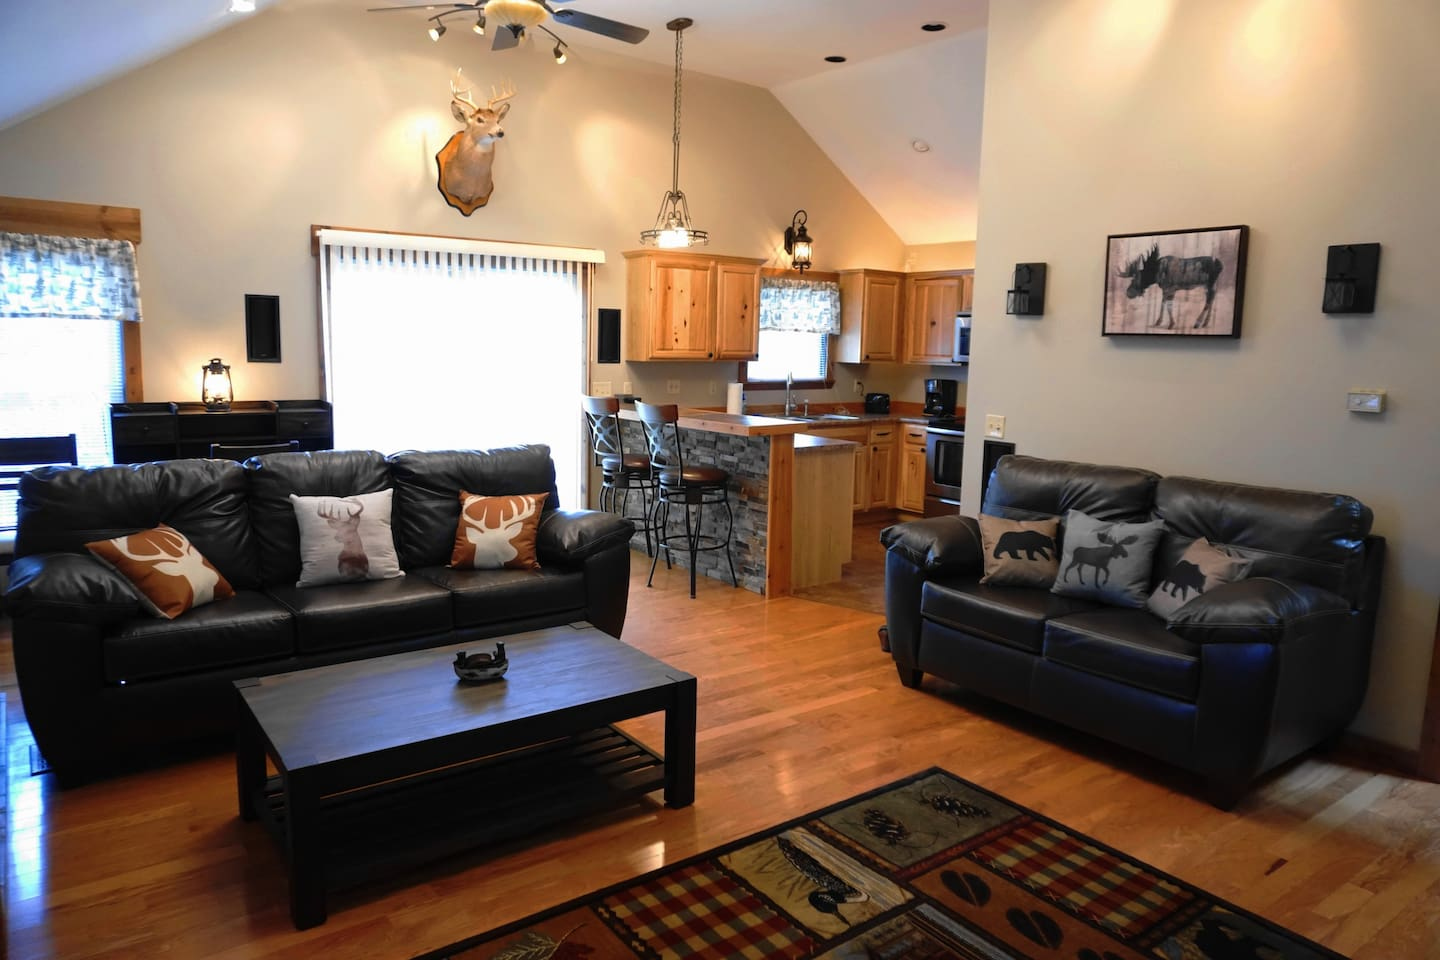 Welcome to The Lodge.  Vaulted ceilings and a lodge themed décor are warm and inviting.  The full size sofa has a pull out memory foam mattress for extra guests.  Sliding doors serve as your entrance and access to private deck with scenic views.